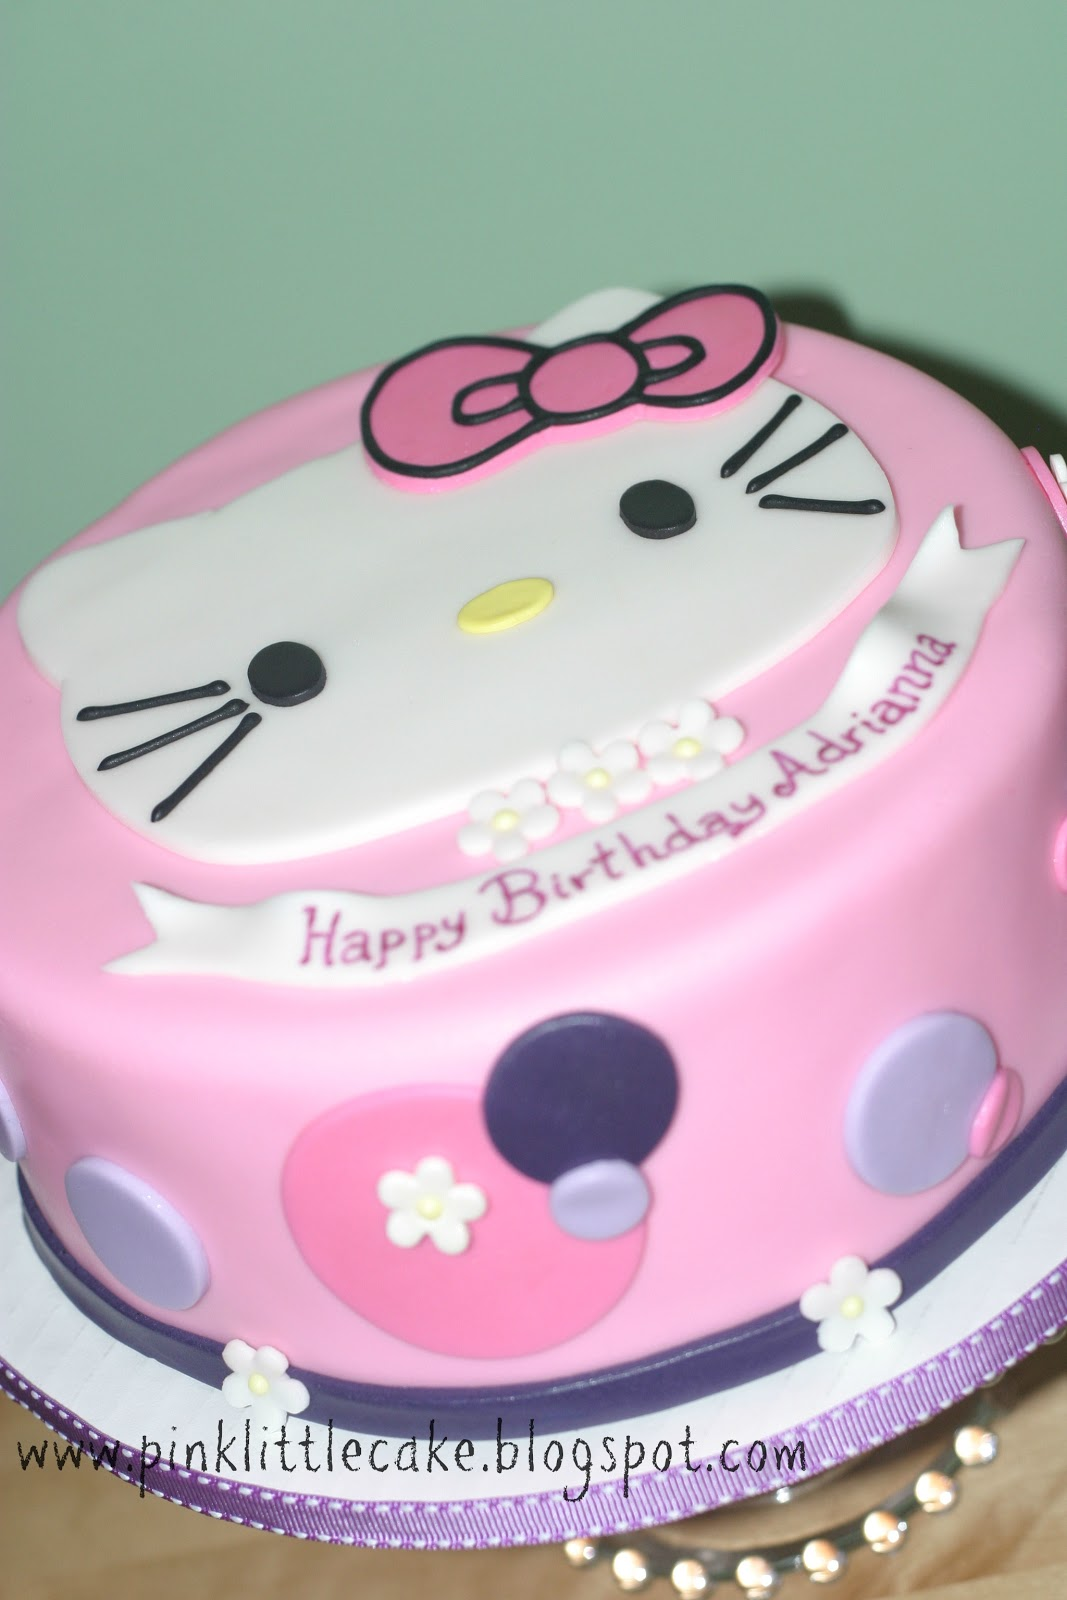 Pink Little Cake Hello Kitty Cake